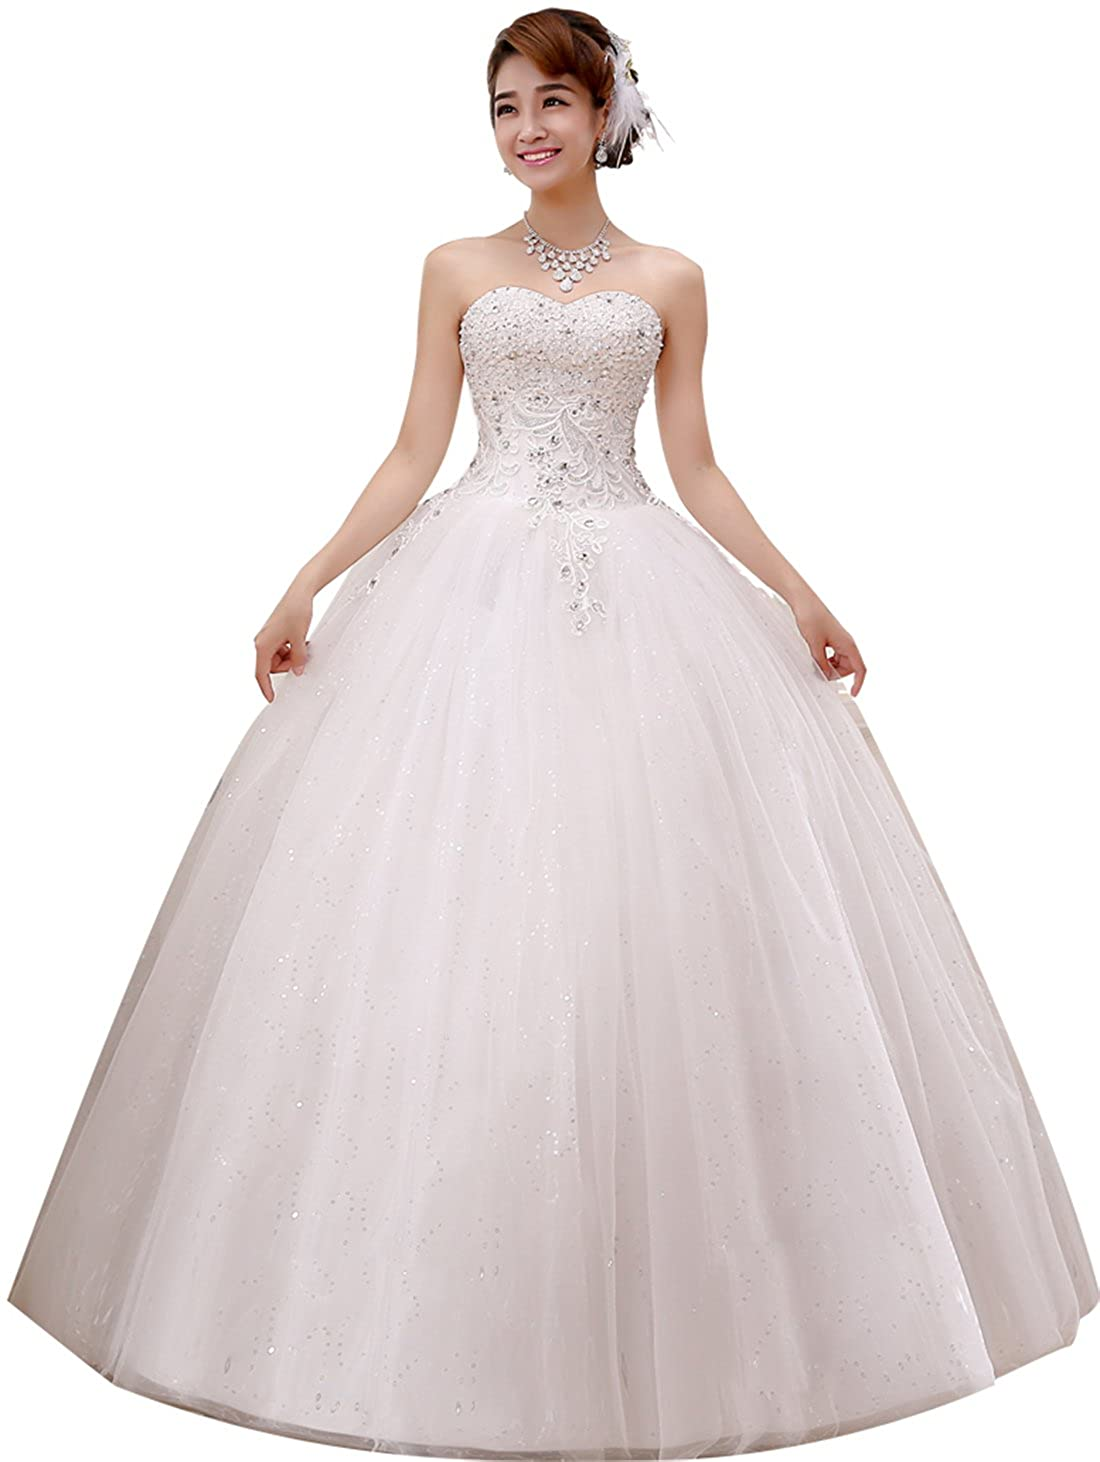 8dd54eb240 obqoo 2019 Gorgeous Sweetheart Beaded Lace Appliqued Ball Gown Wedding  Dress Ivory Pure White at Amazon Women s Clothing store